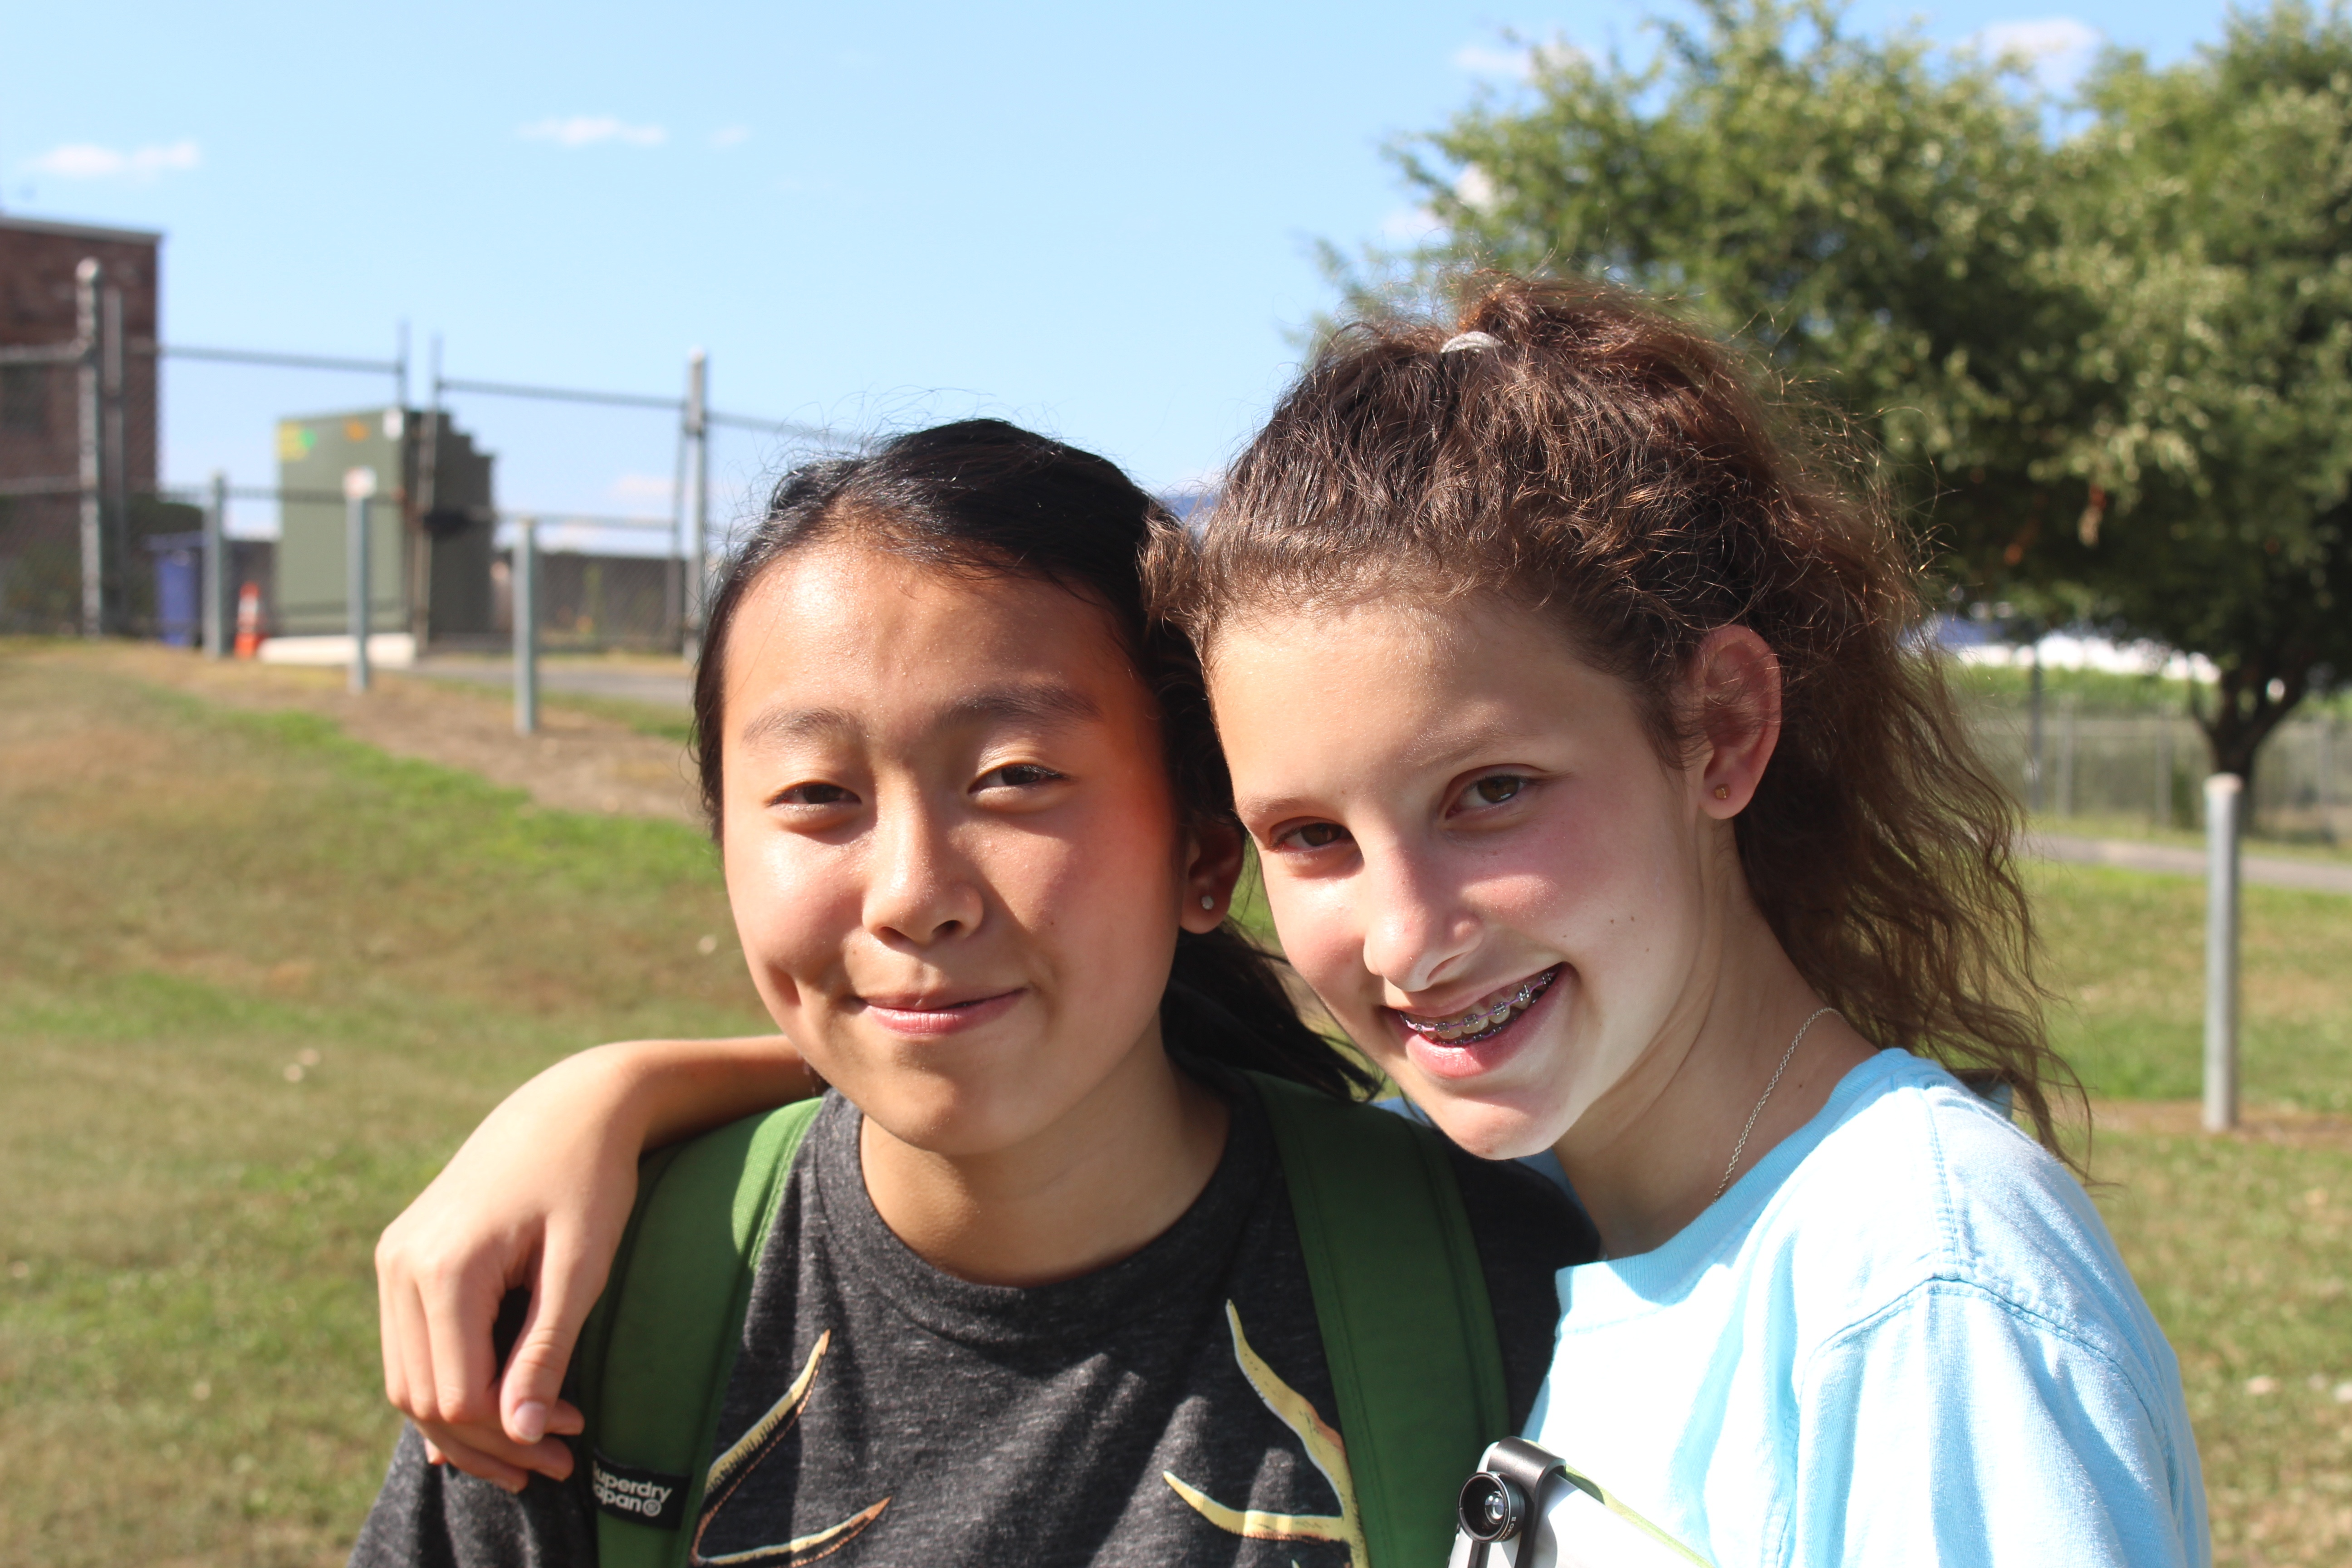 Natasha and Lucia explore and photograph nature during an afternoon cocurricular time.